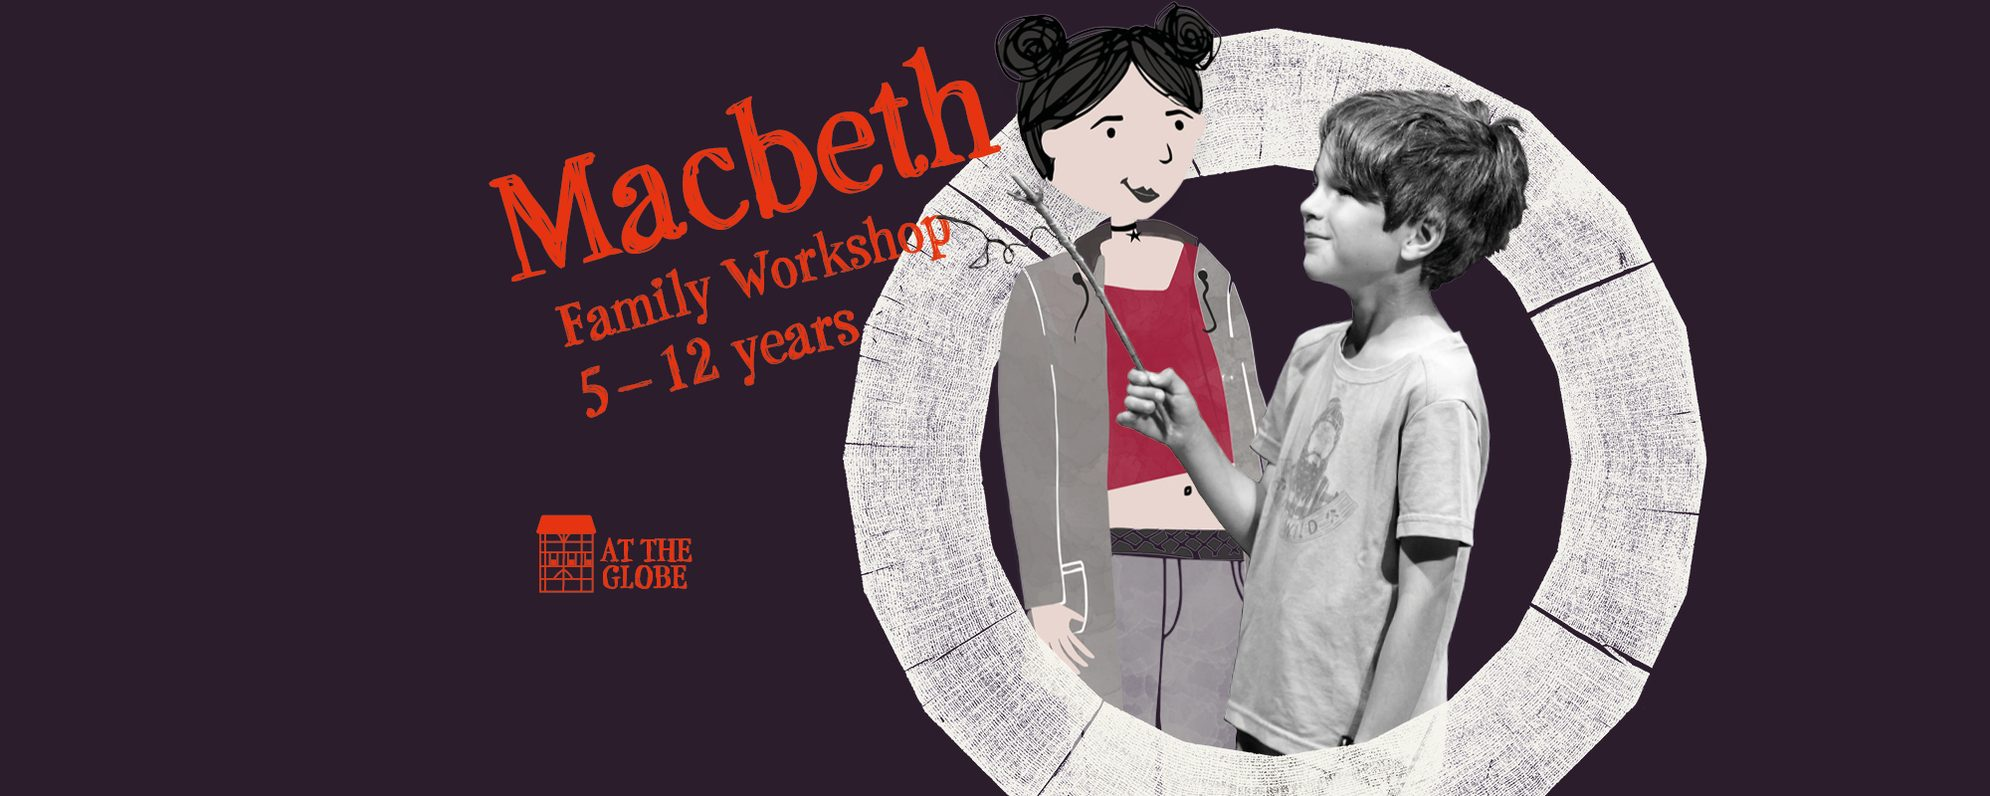 Text: Macbeth Family Workshop 5-12 years, Image of the Globe Theatre with a cartoon teen and child holding a stick